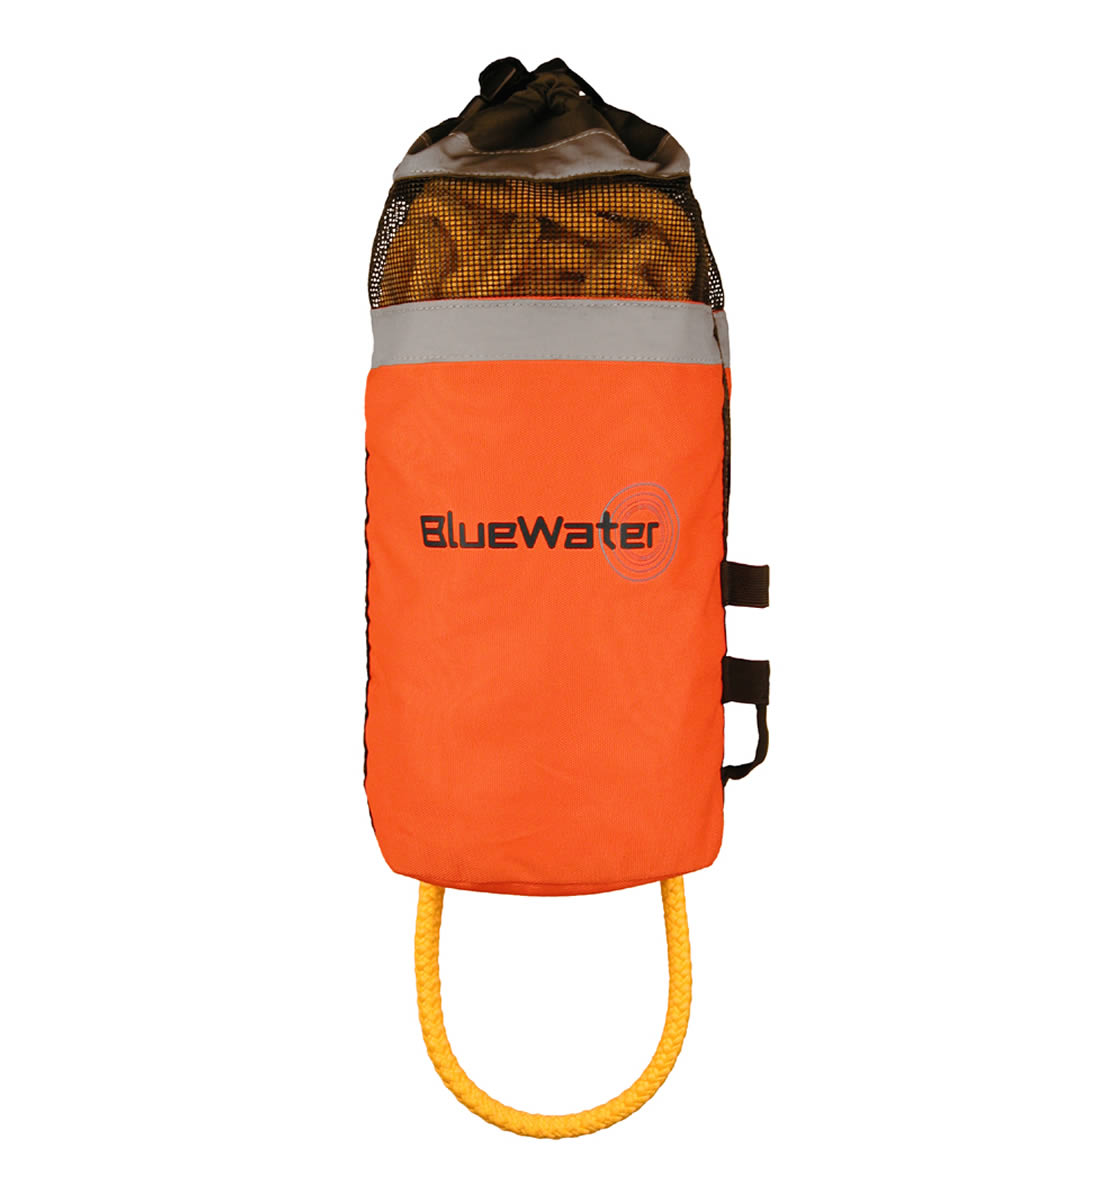 River Rescue Bags Bluewater Ropesbluewater Ropes